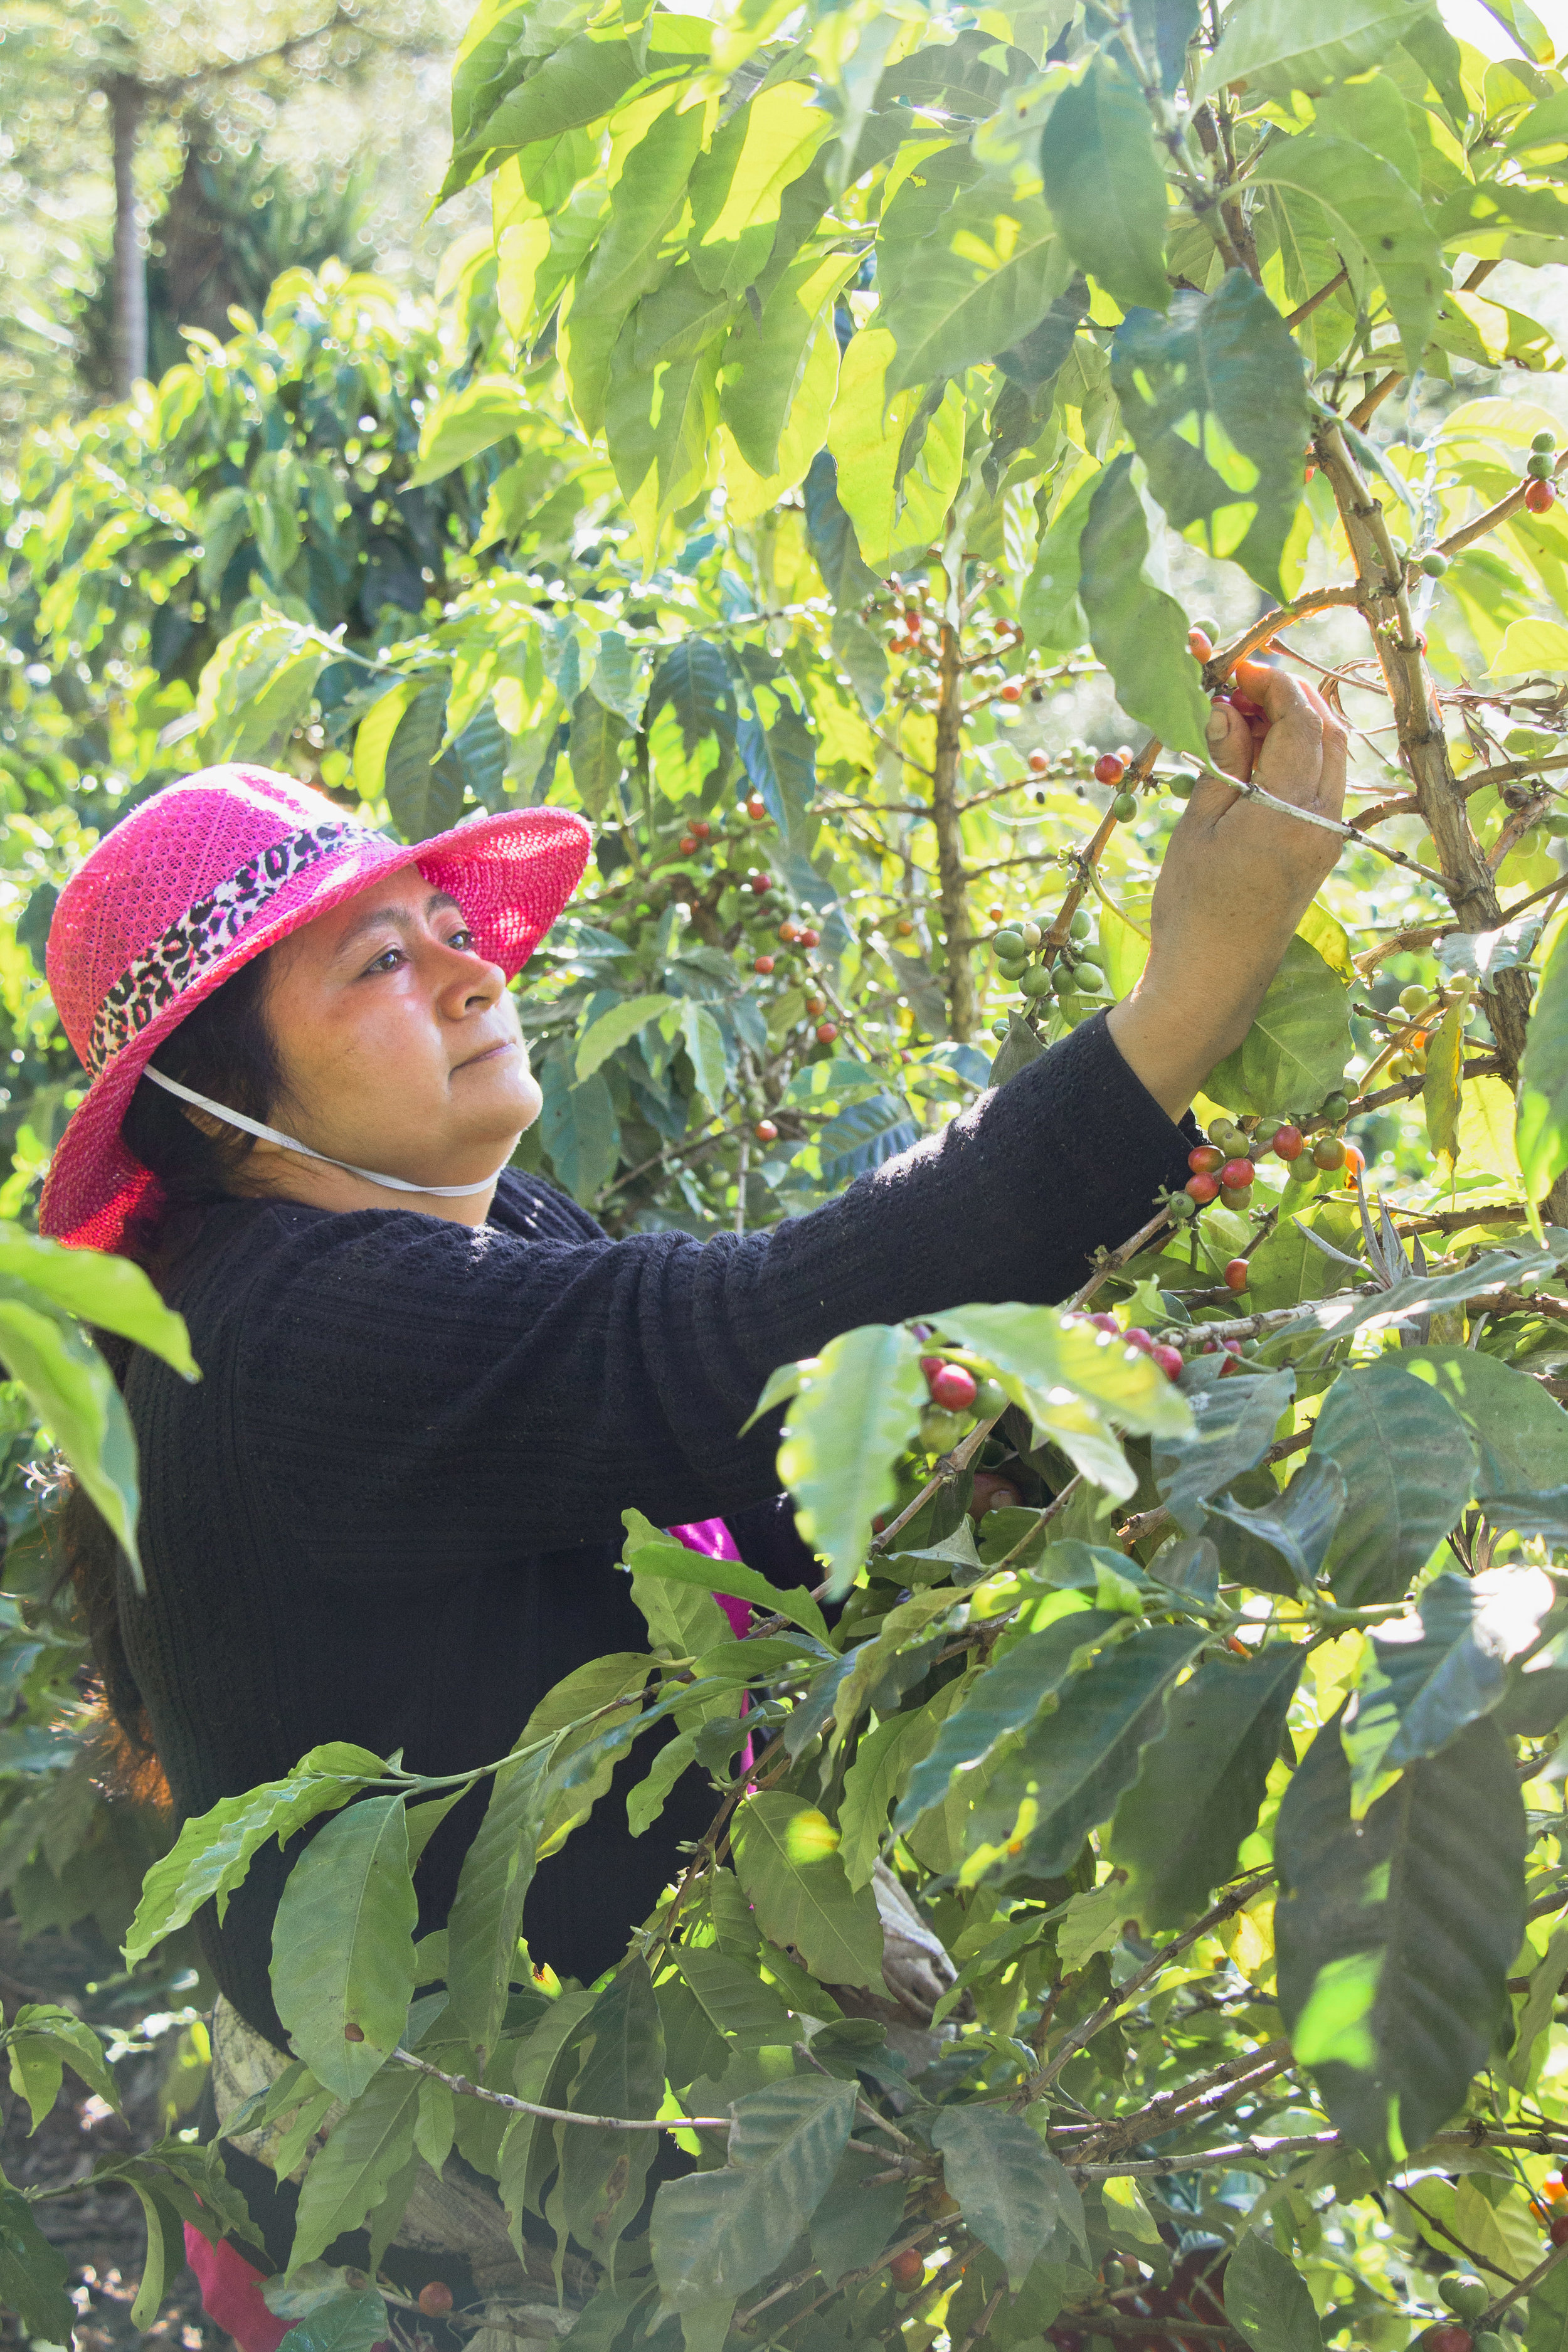 MARTHA EUGENIA JEREZ, FELIX PORÓN MEDIO'S WIFE, PICKS COFFEE CHERRIES ON THE COFFEE FARM ON JAN. 18. EUGENIA SPENDS HER TIME ON THE FARM WITH ADDITIONAL WORKERS, ON AVERAGE, ABOUT TWO TIMES A YEAR.